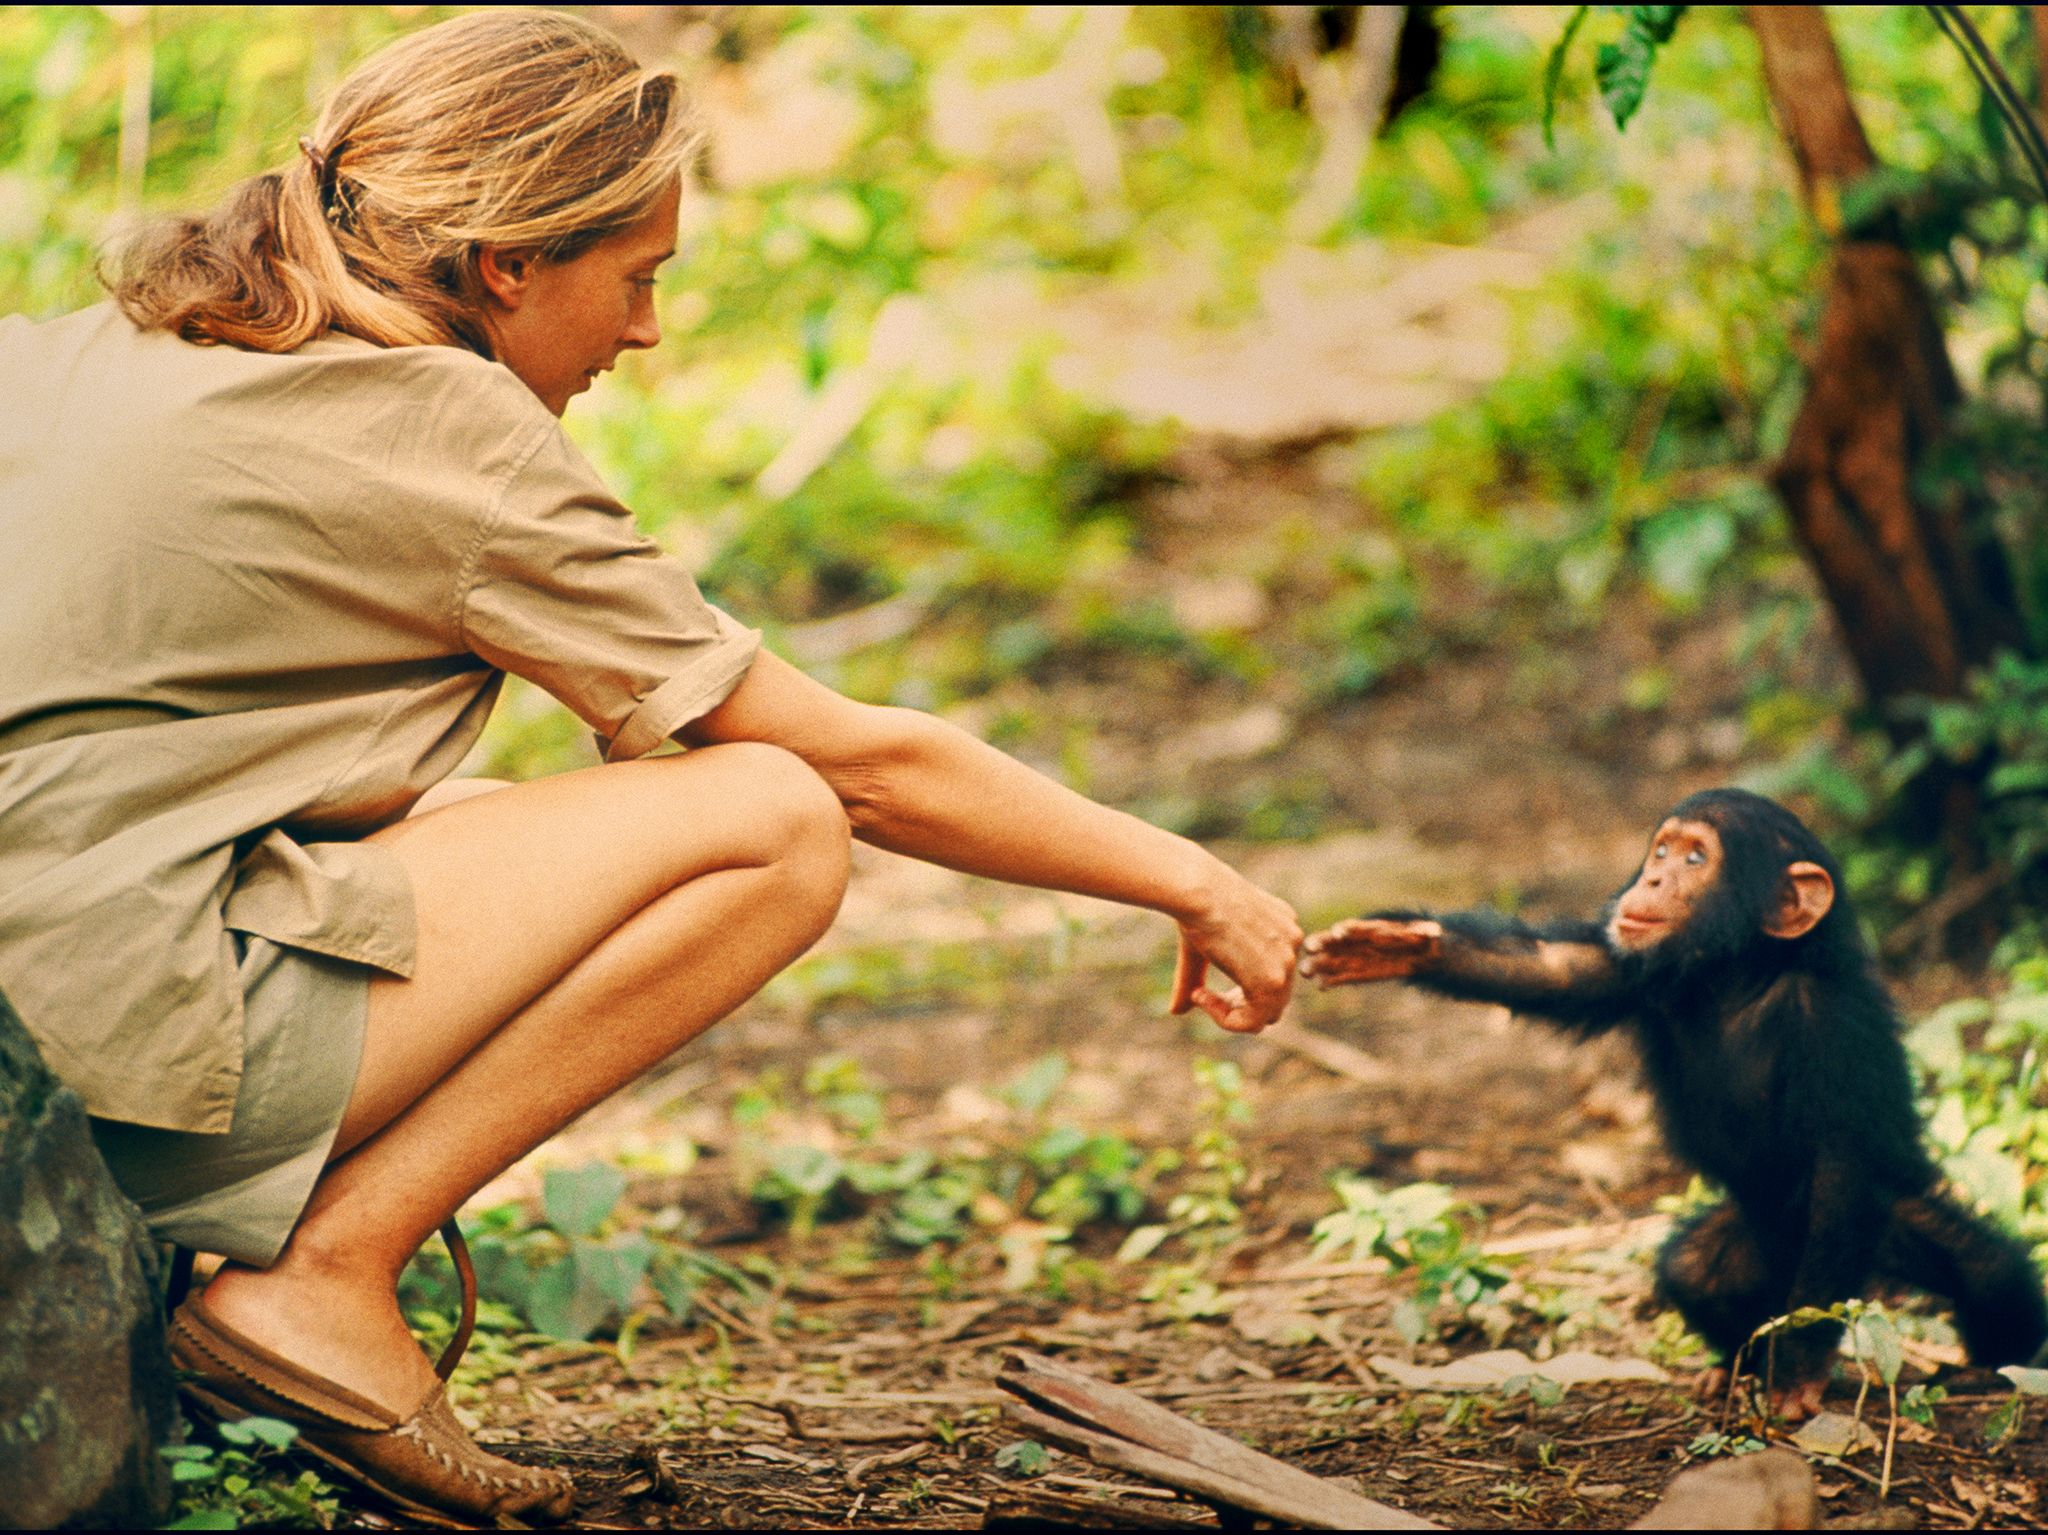 Gombe, Tanzania:  Jane Goodall and infant chimpanzee Flint reach out to touch each other's... [Photo of the day - March 2018]